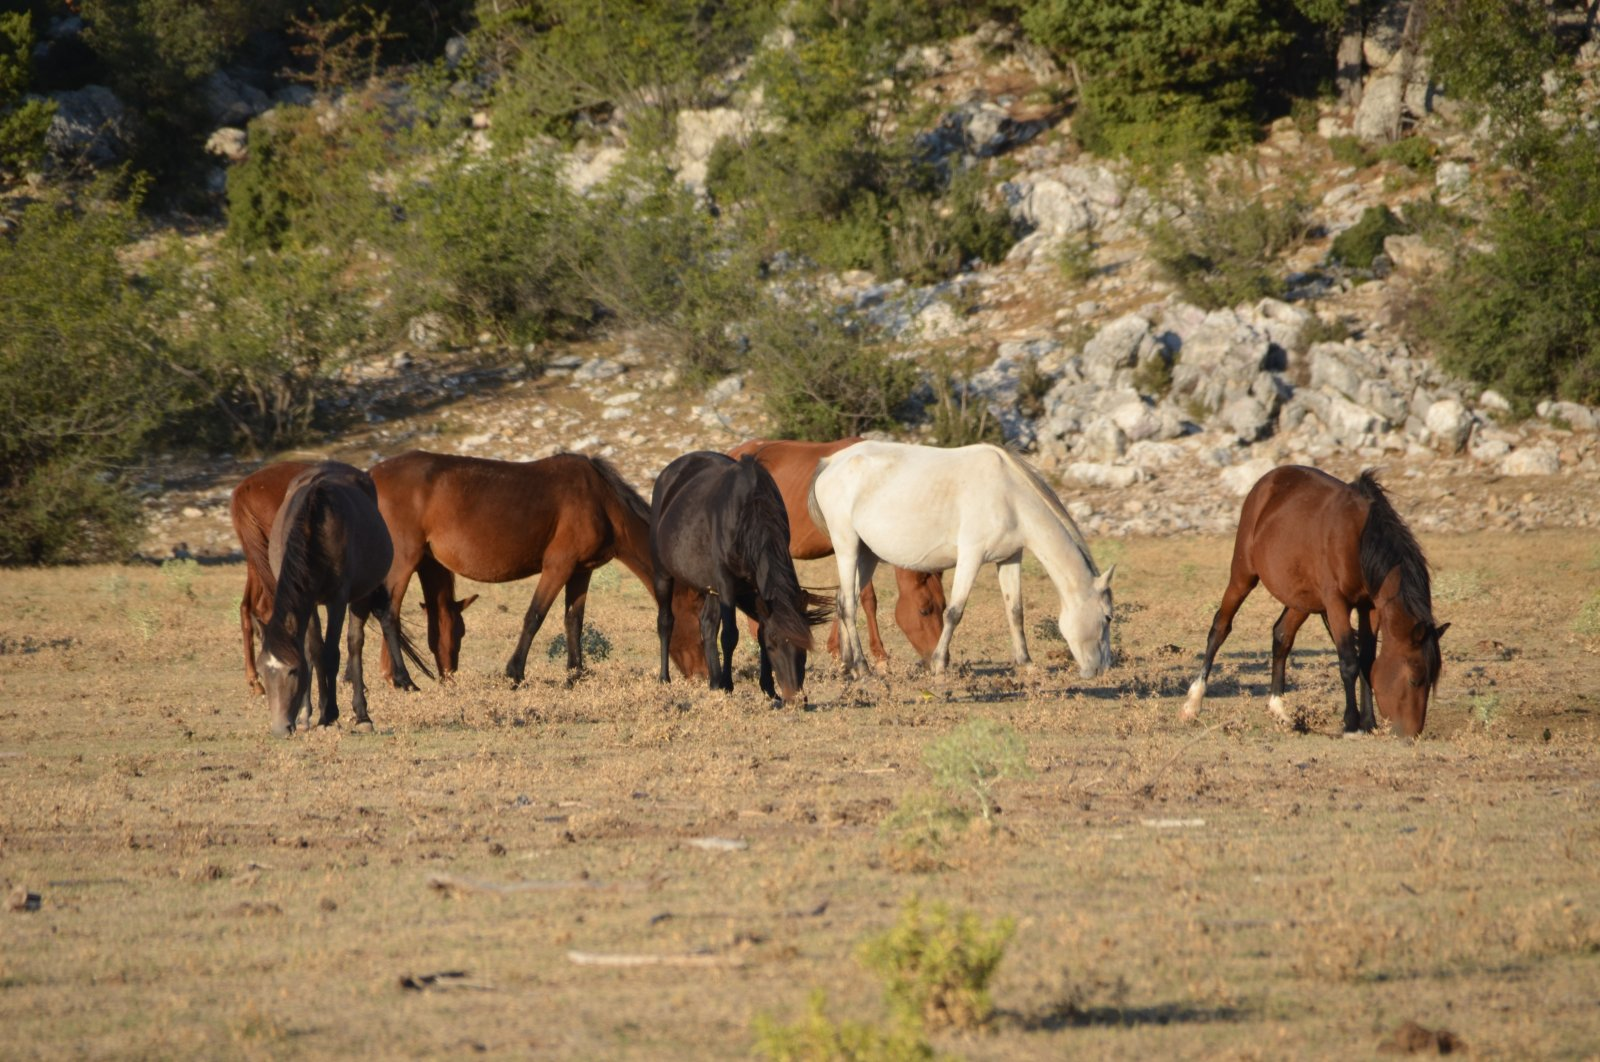 A view of wild horses in Ibradı district, in Antalya, southern Turkey, Sept. 22, 2021. (IHA Photo)